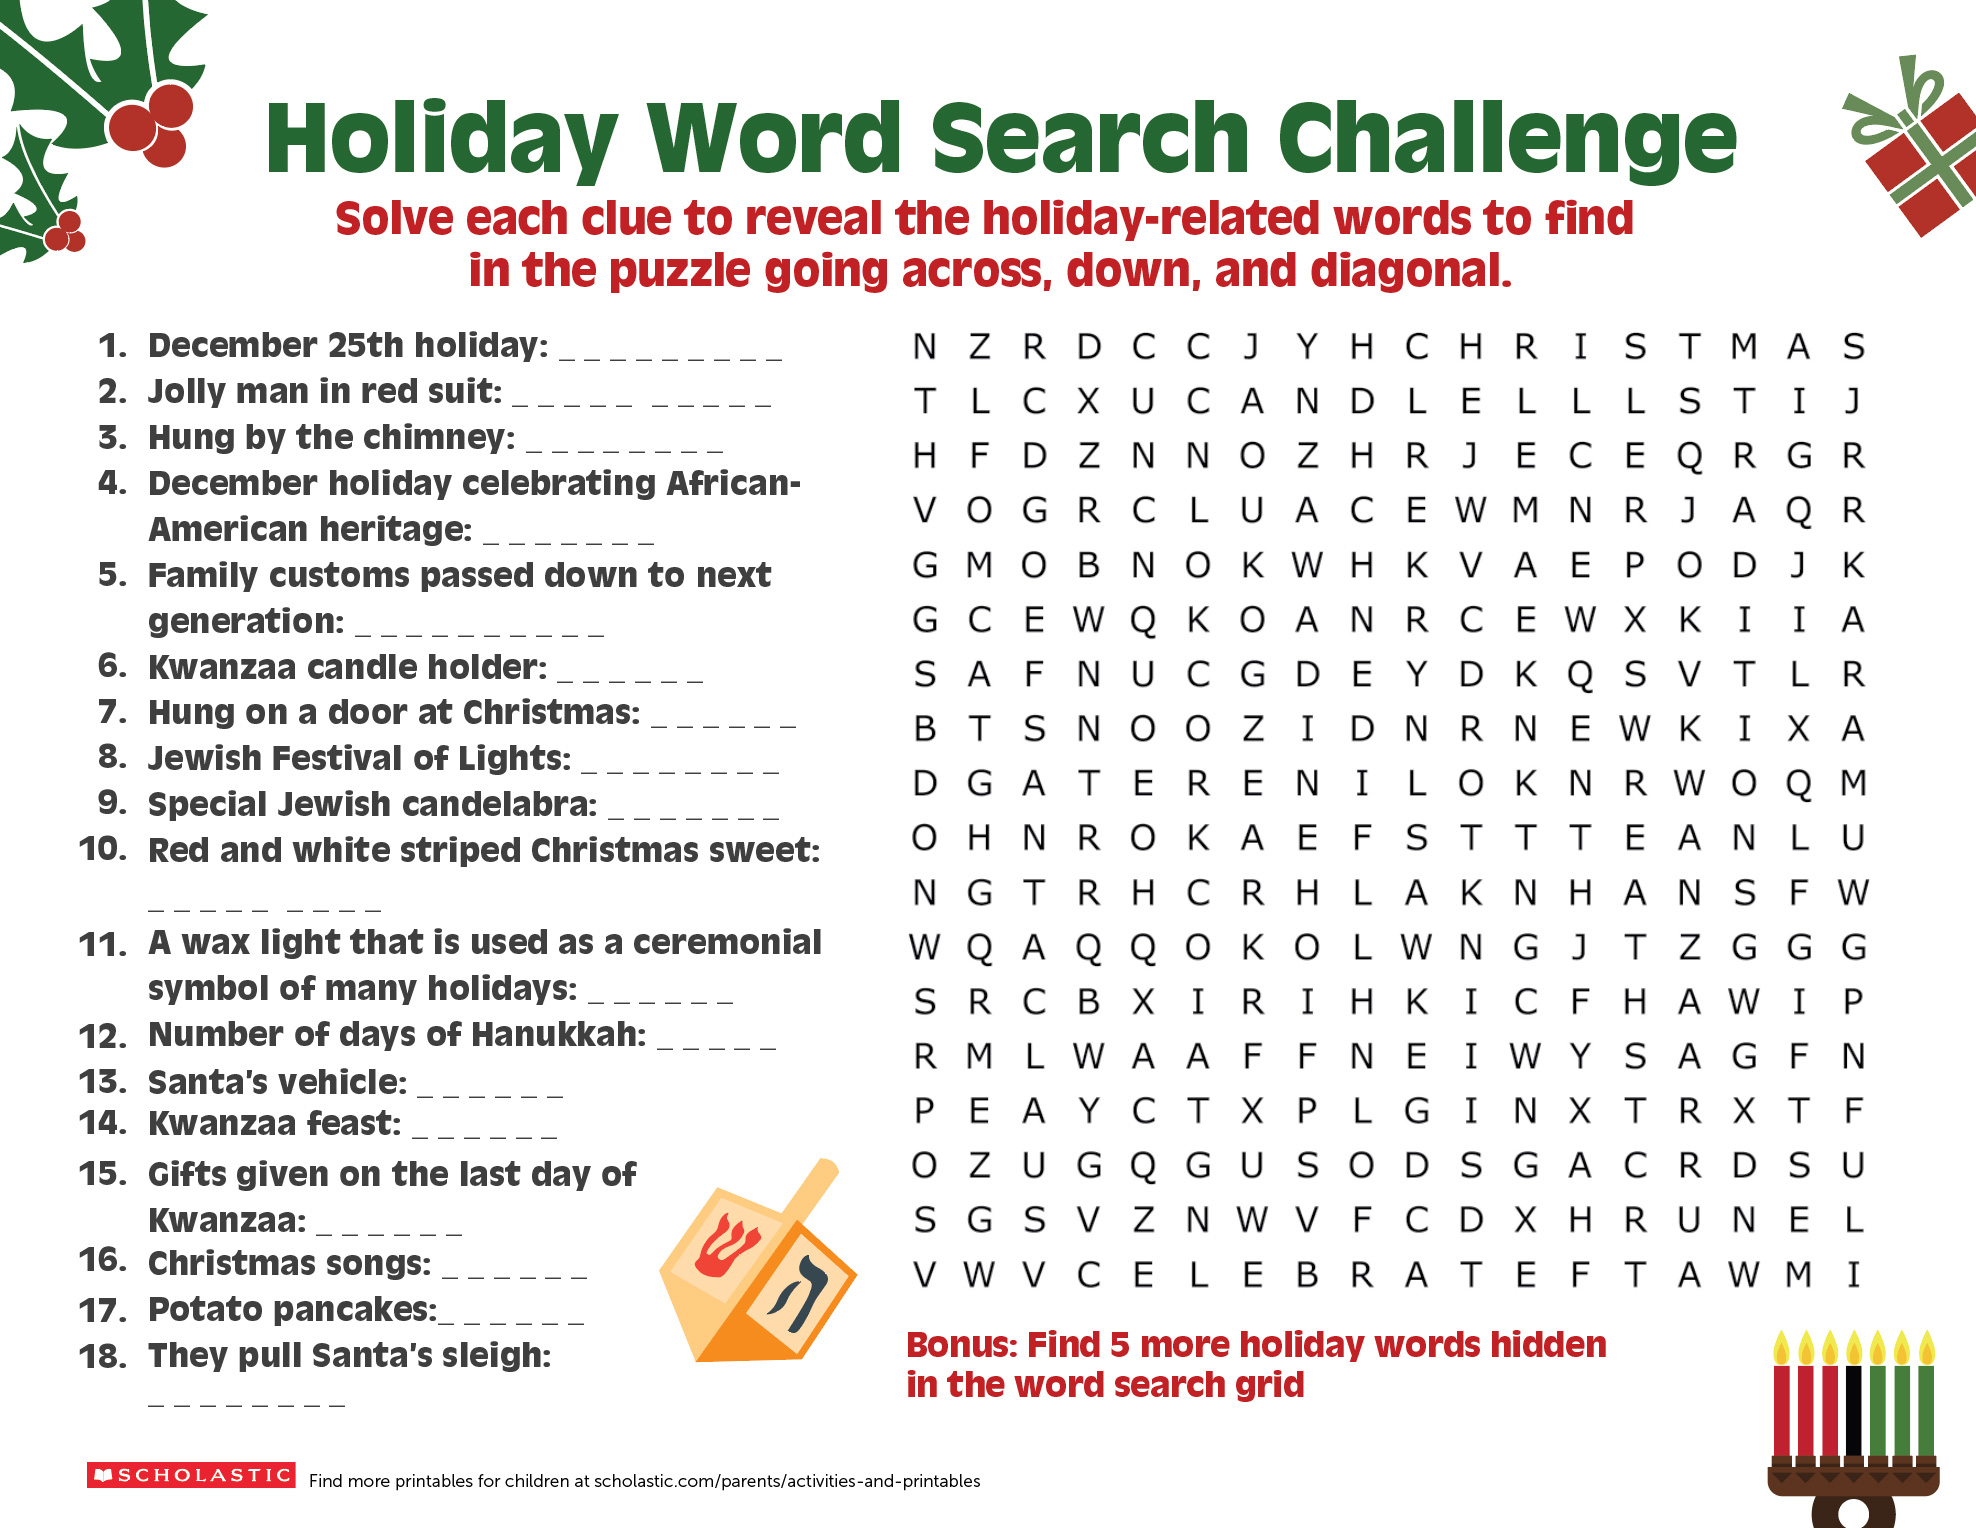 Share A Holiday Word Search-Puzzle With Your Older Child